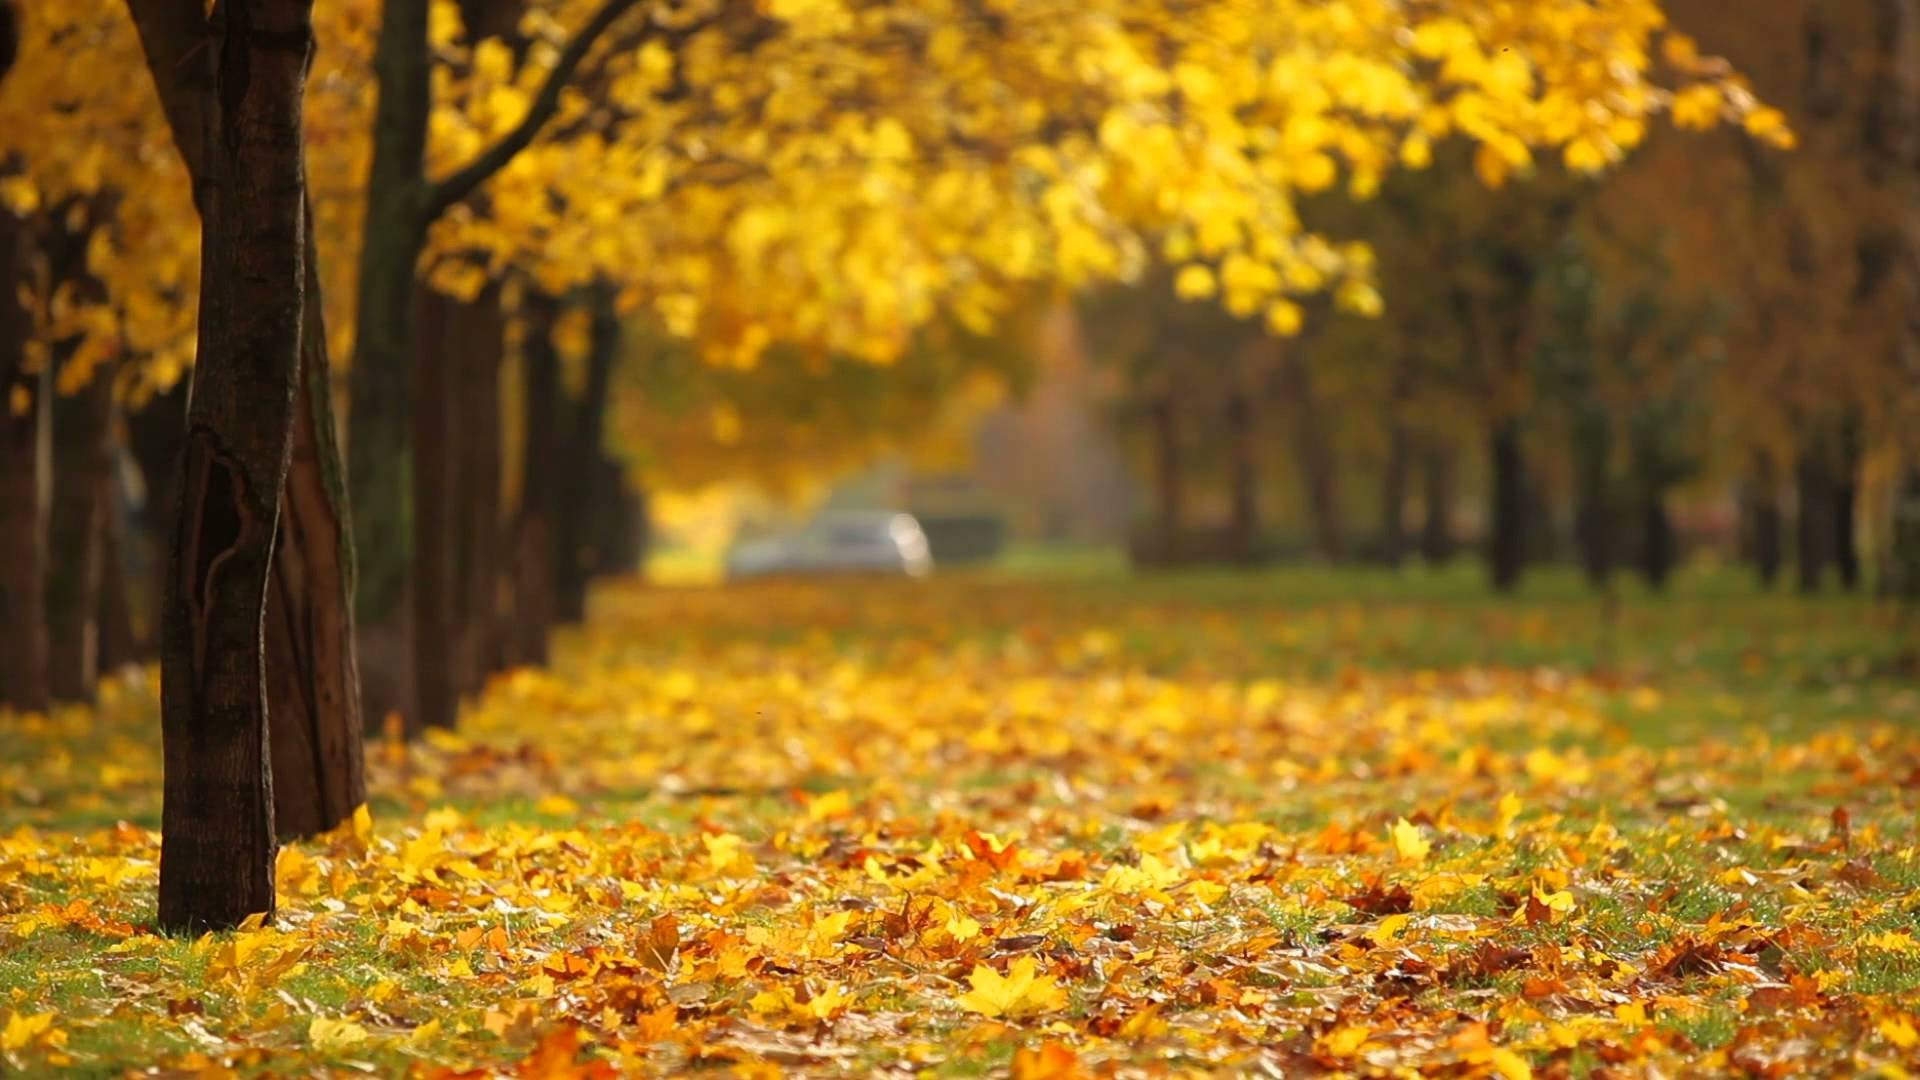 Pretty Fall Iphone Wallpapers Fall Background 183 ① Download Free Stunning Full Hd